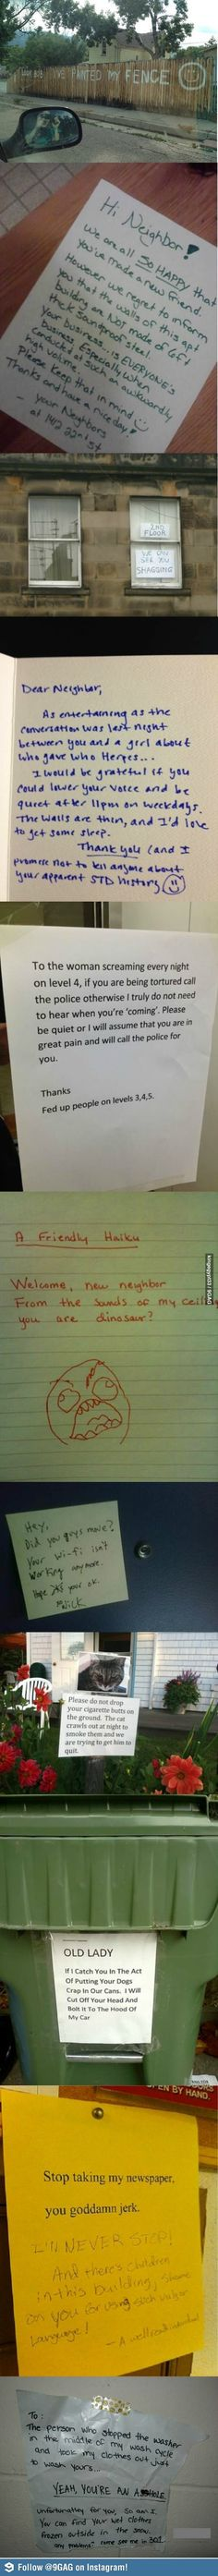 Awesomely Funny Notes from your Neighbors